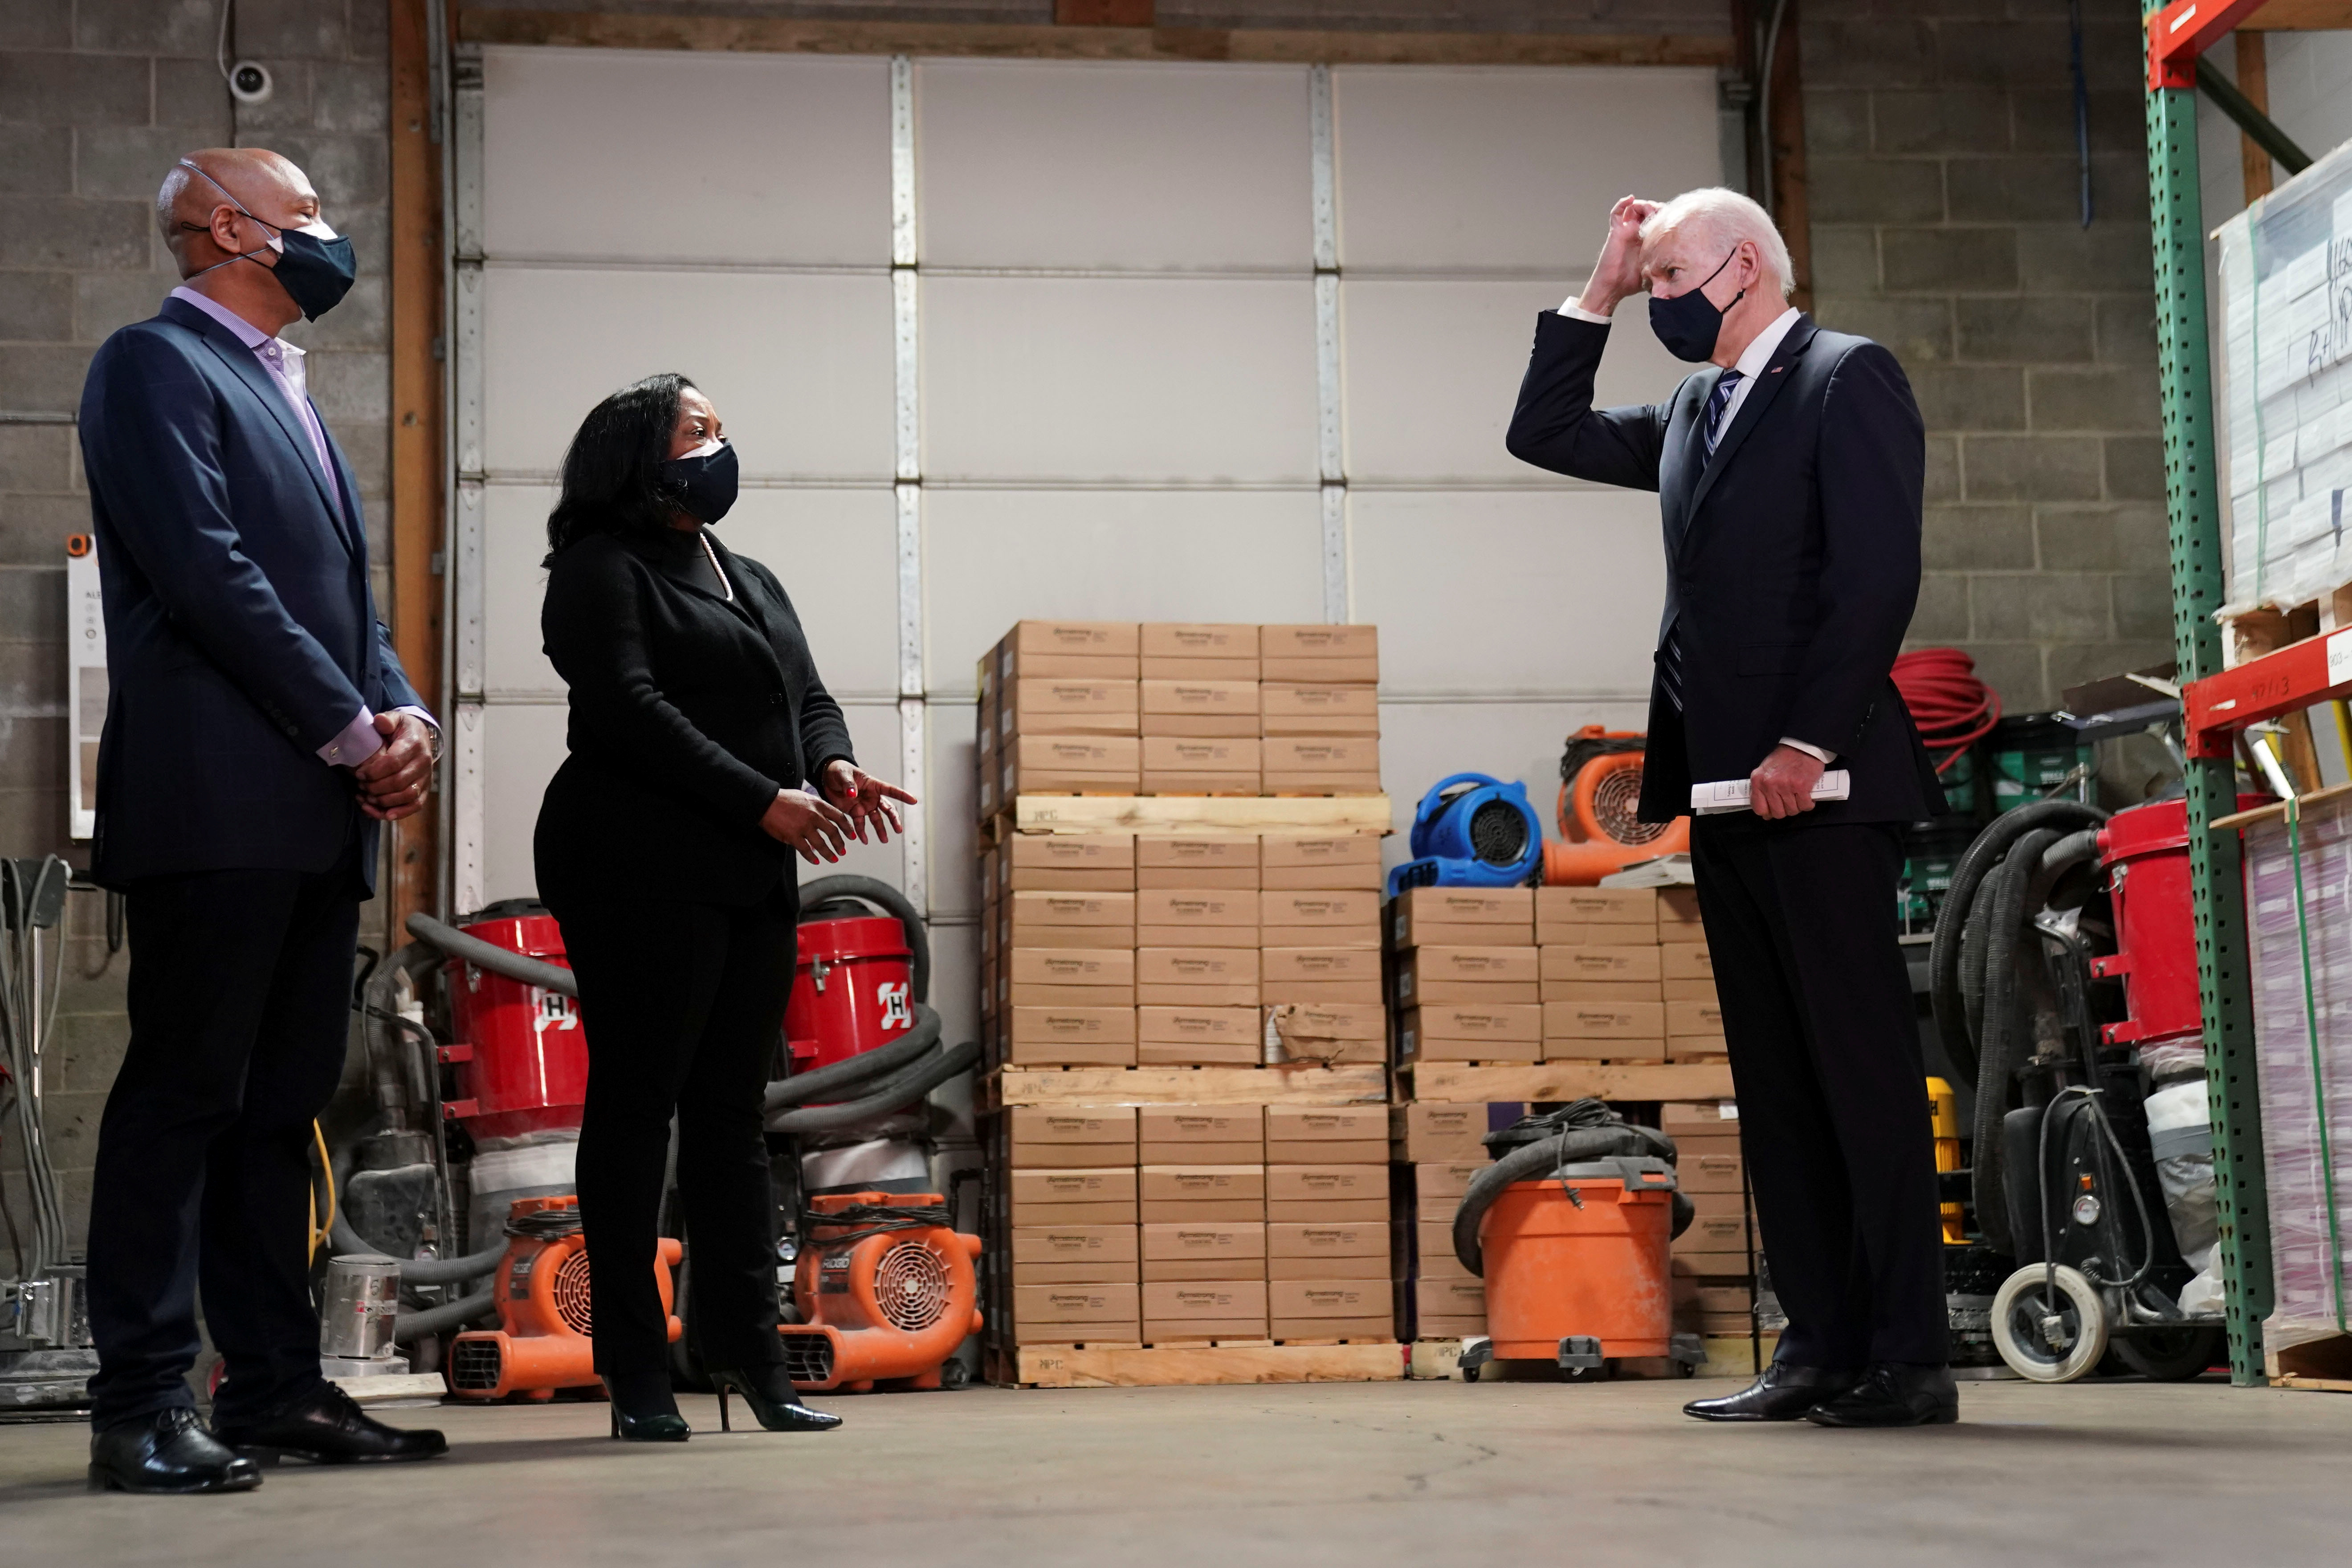 U.S. President Joe Biden speaks with owners James Smith and Kristin Smith during a